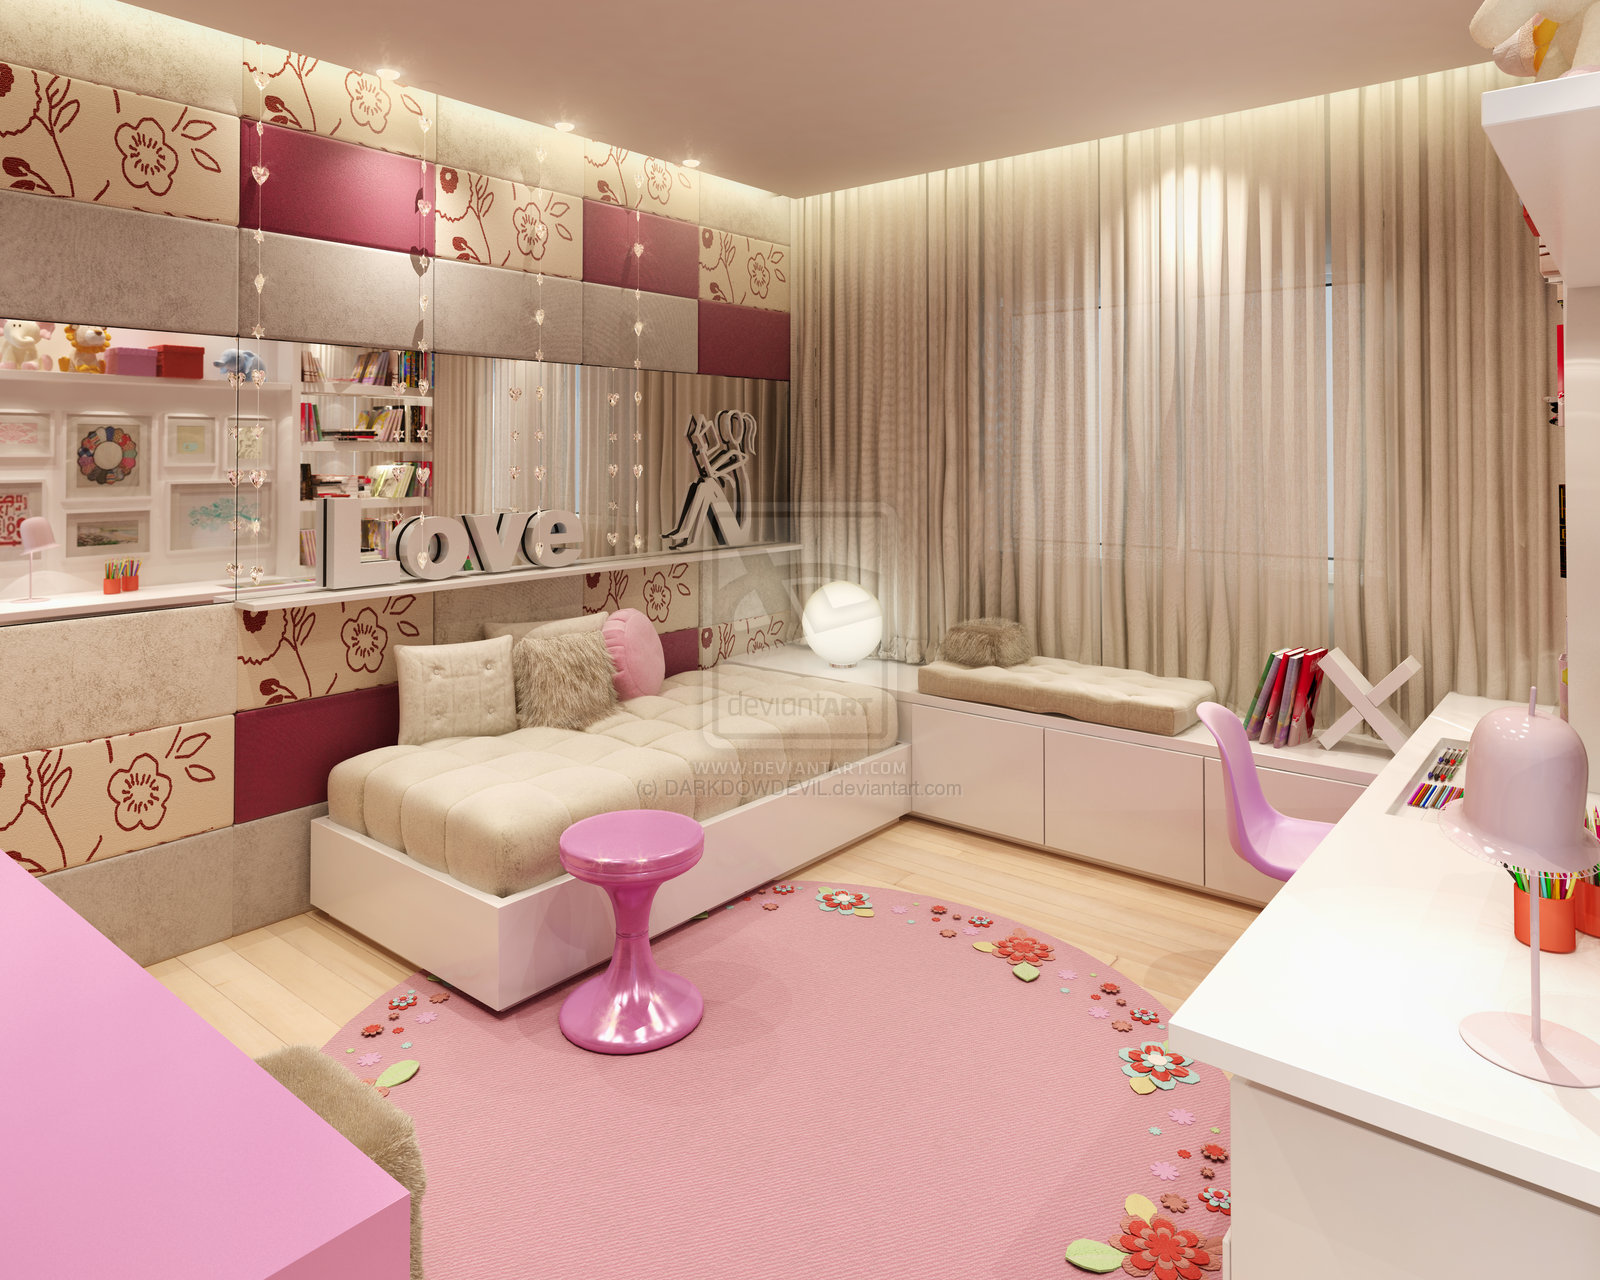 Girly bedroom design ideas wonderful for Cute bedroom decorating ideas for girls